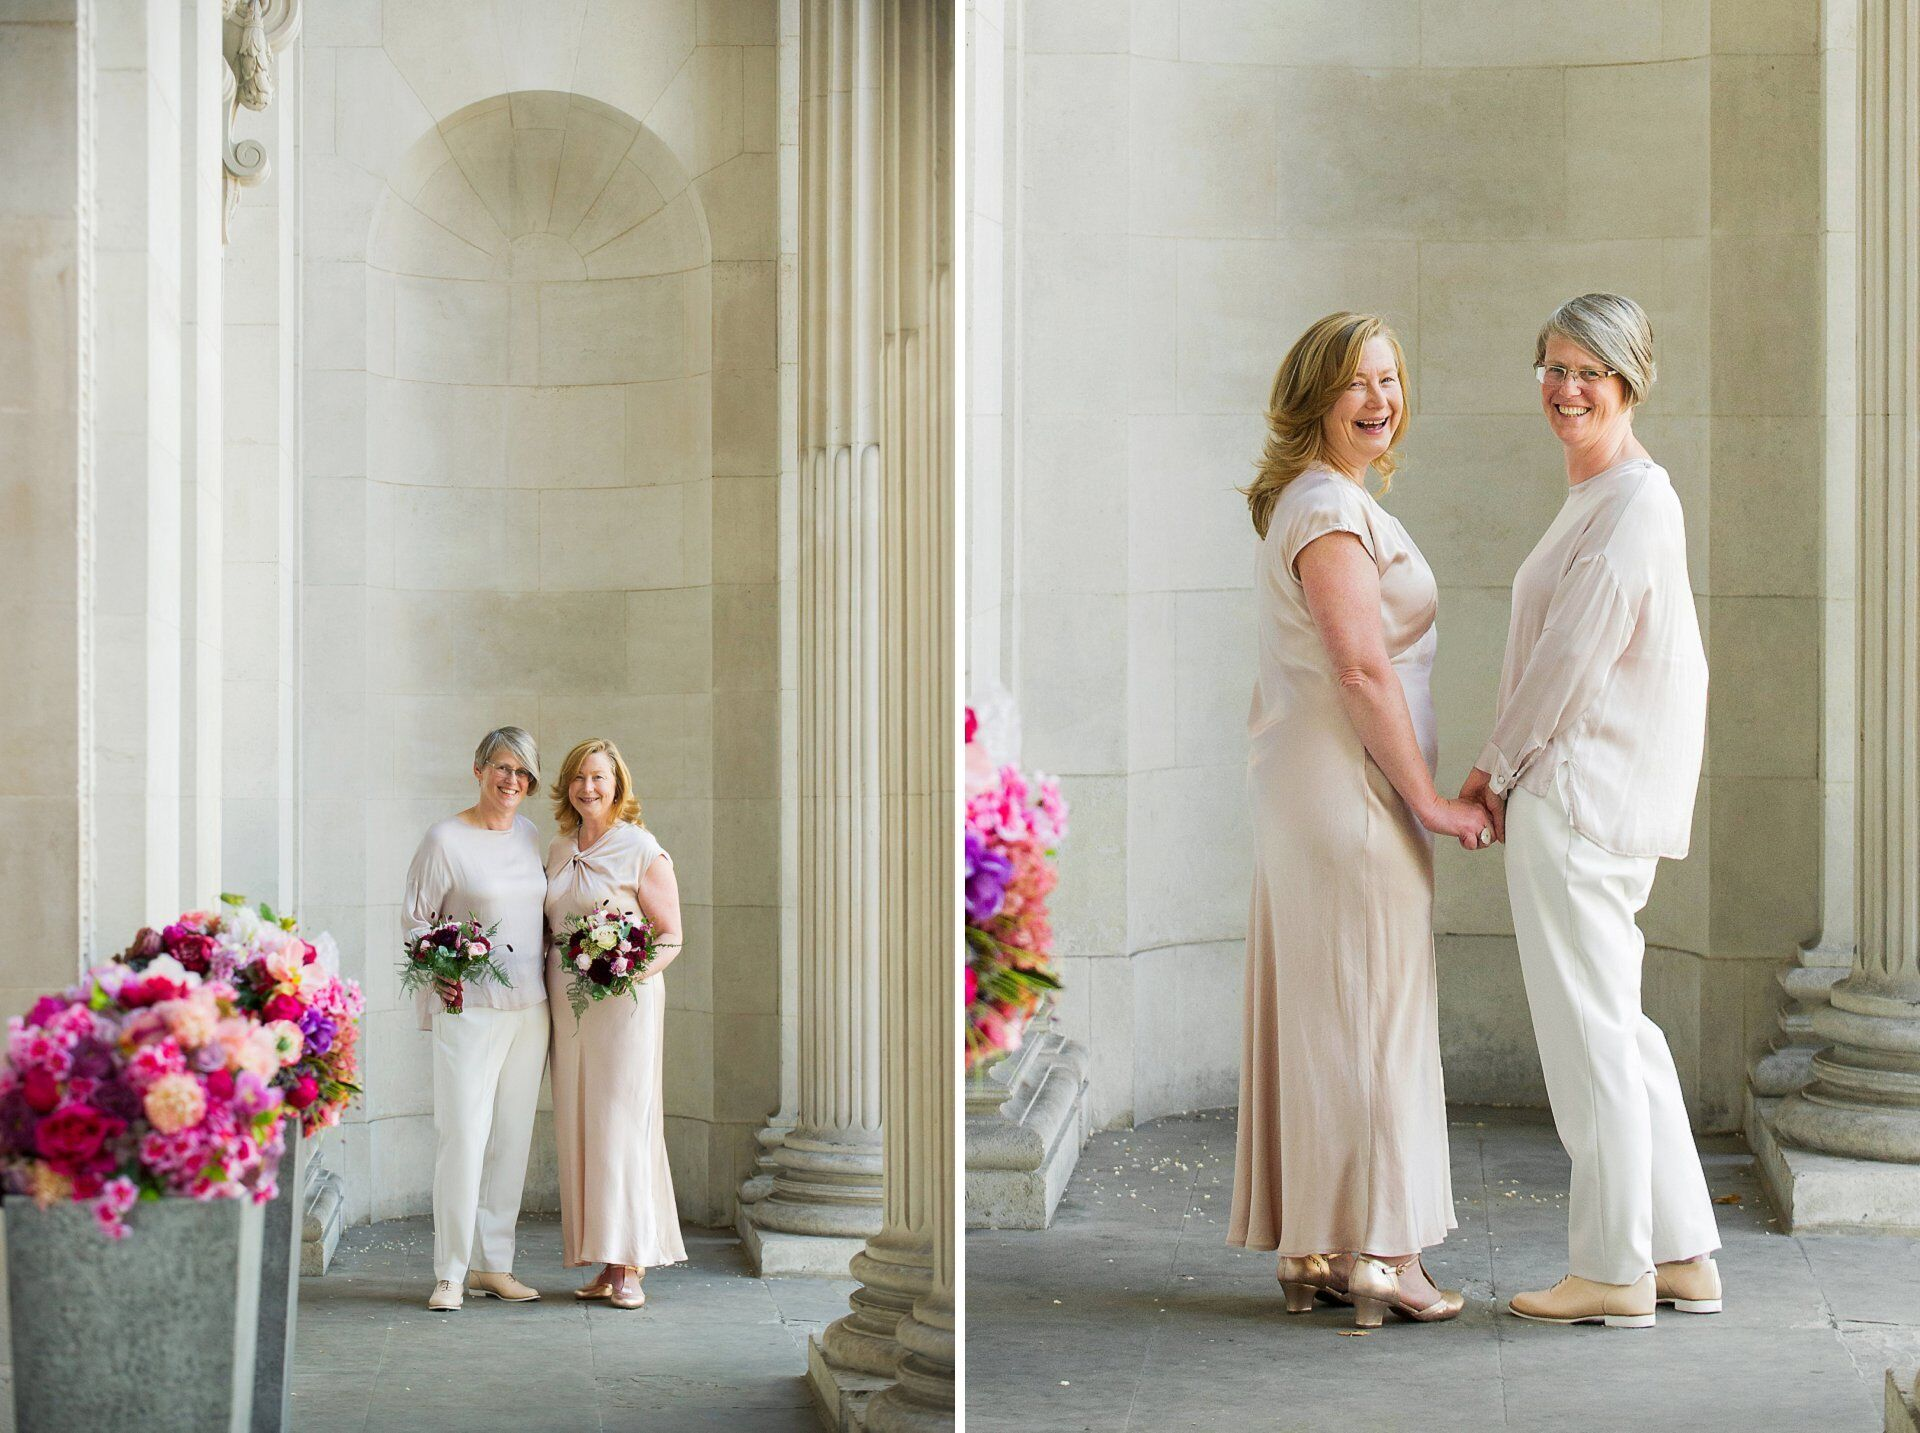 brides sarah and emma with stunning flowers by titania's garden in marylebone pose under the pretty fluted columns at westminster council house